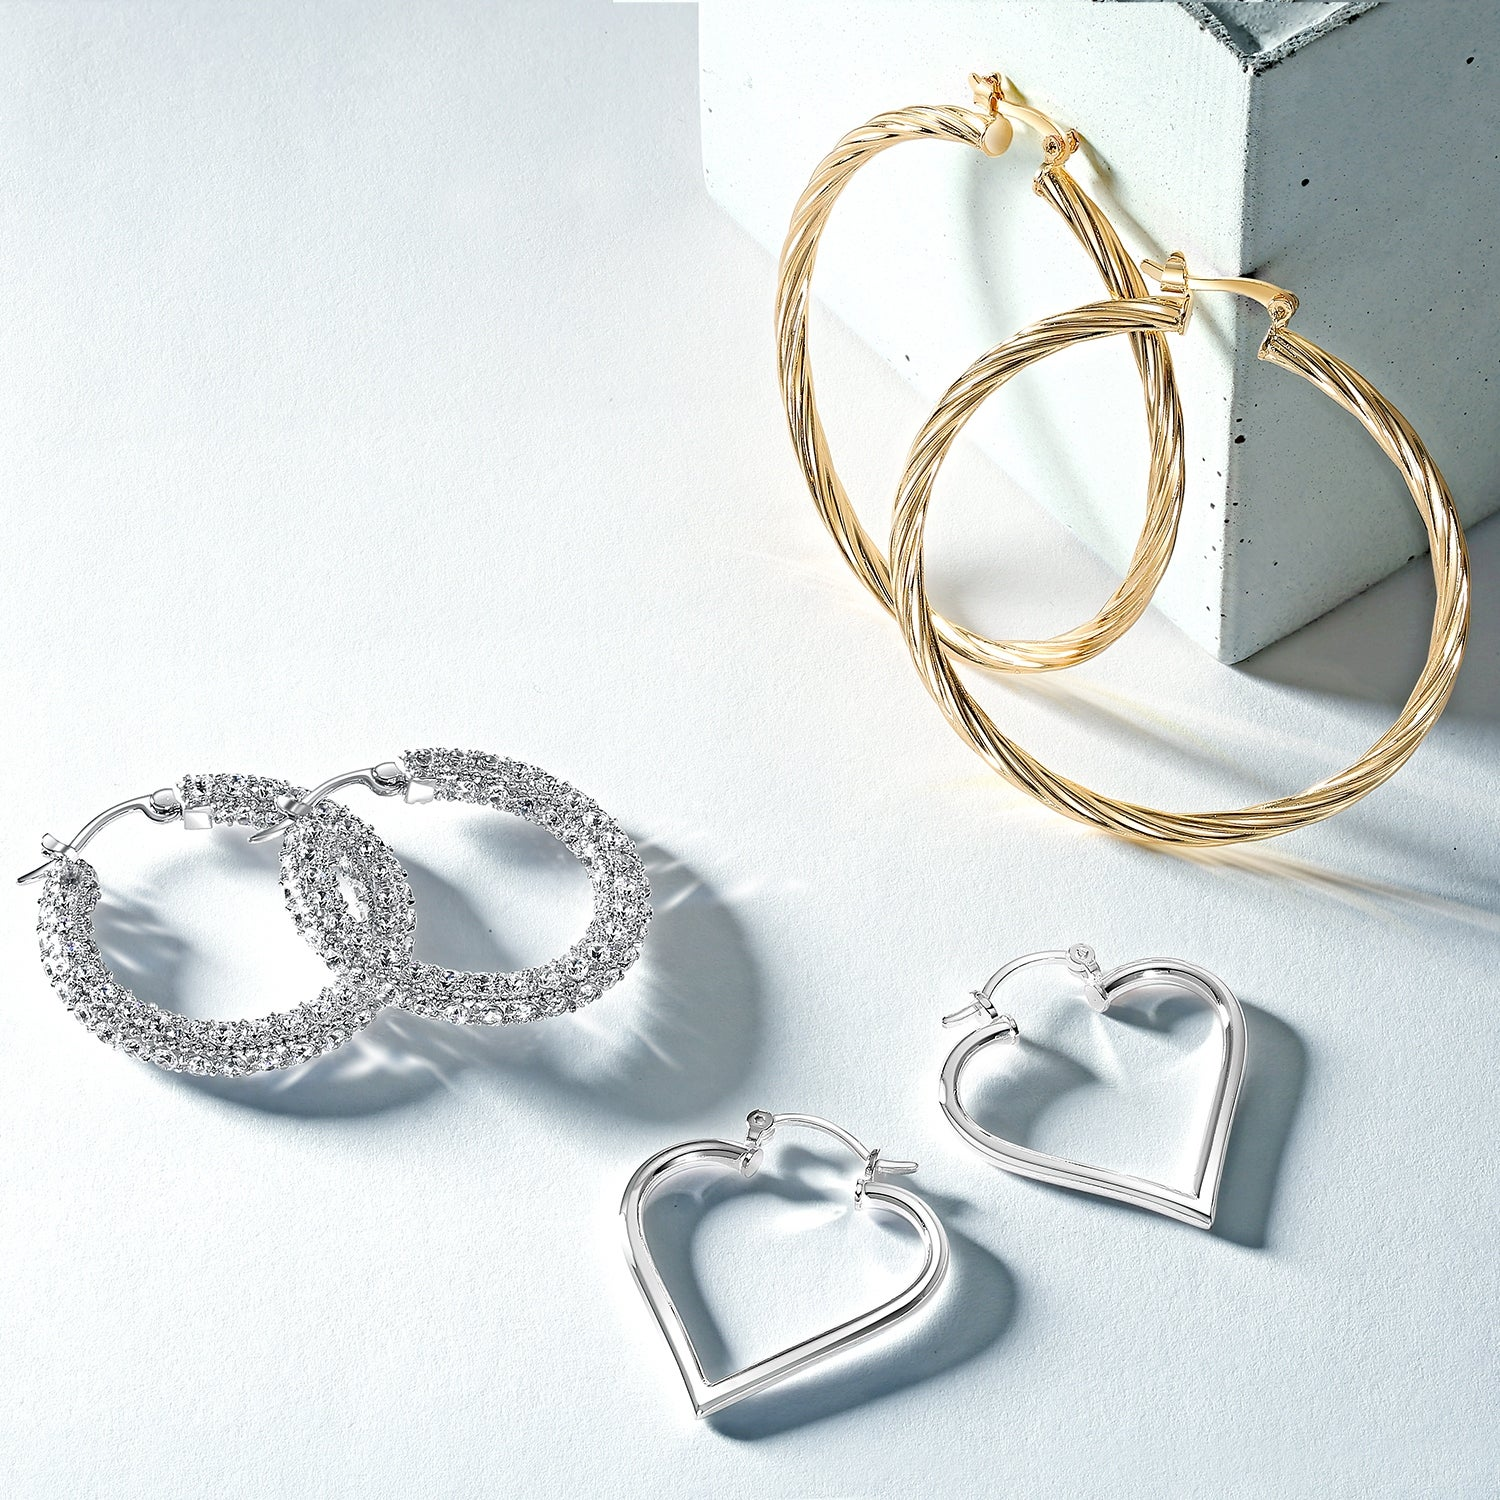 3f851154e5 Shop Large Heart Shaped Tube Big Hoop Earrings For Women Teen 925 Sterling  Silver Hinged Notched Post - On Sale - Free Shipping On Orders Over  45 ...